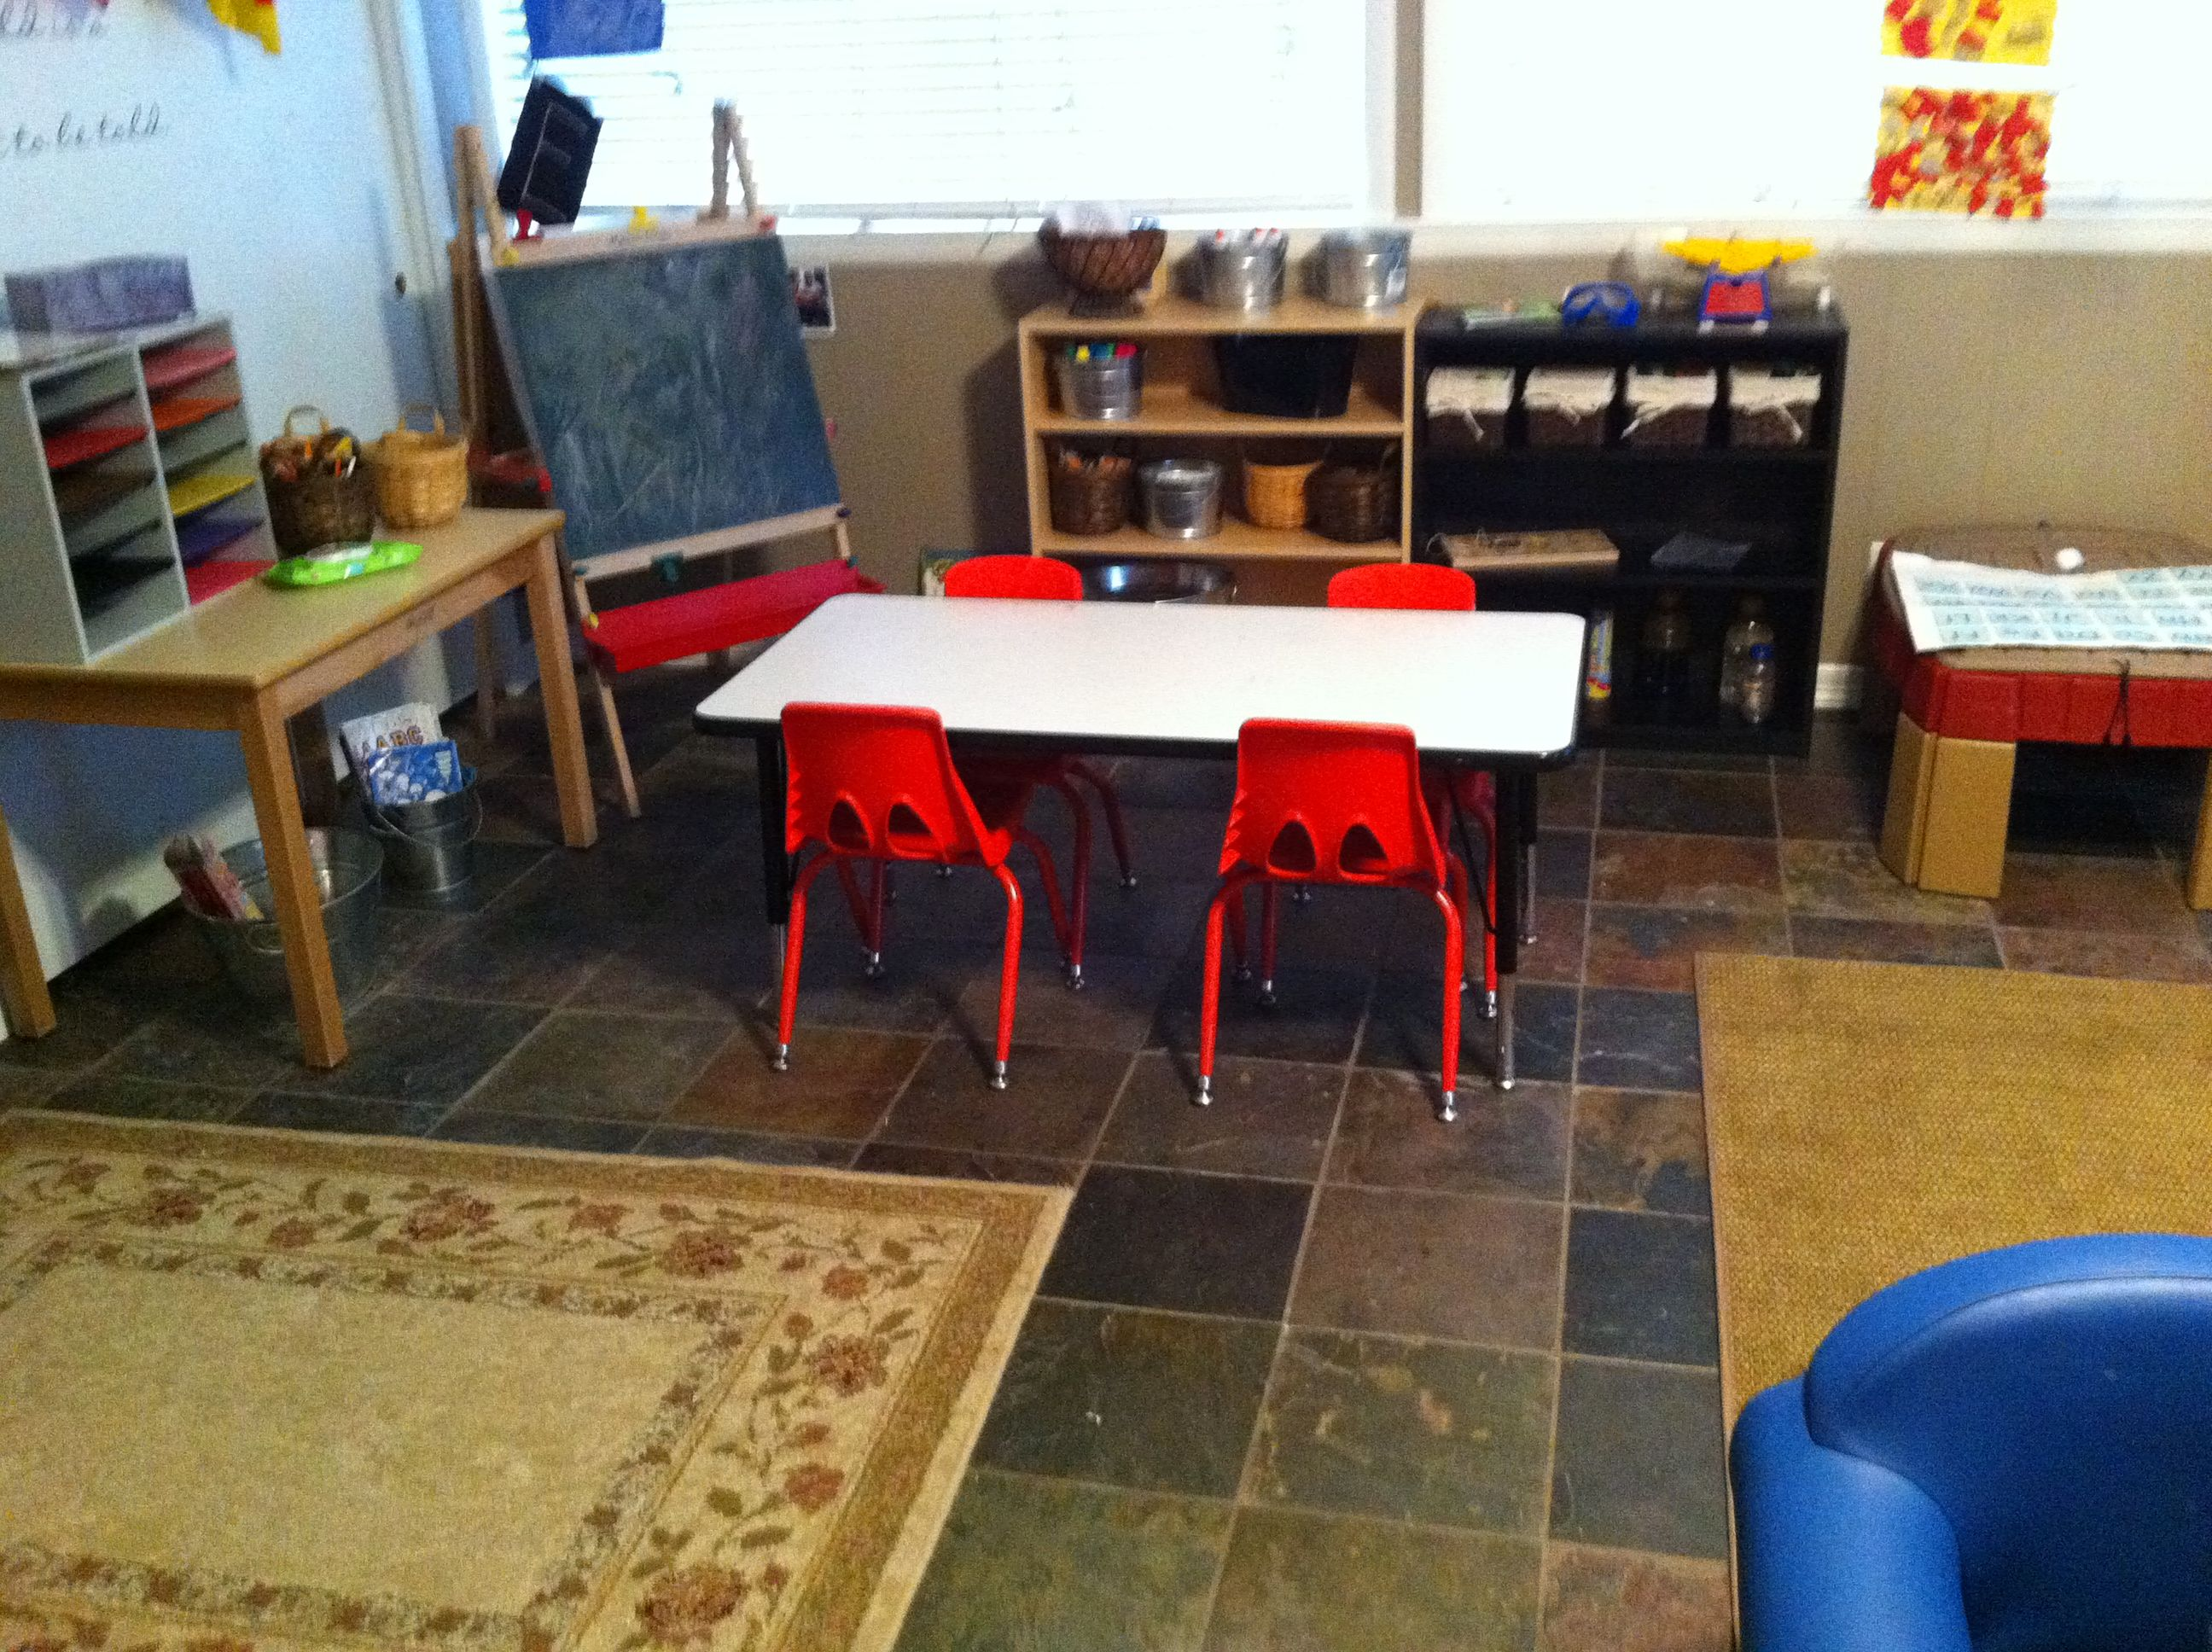 I need to write an essay on what ideas to use for rooms in a community center?